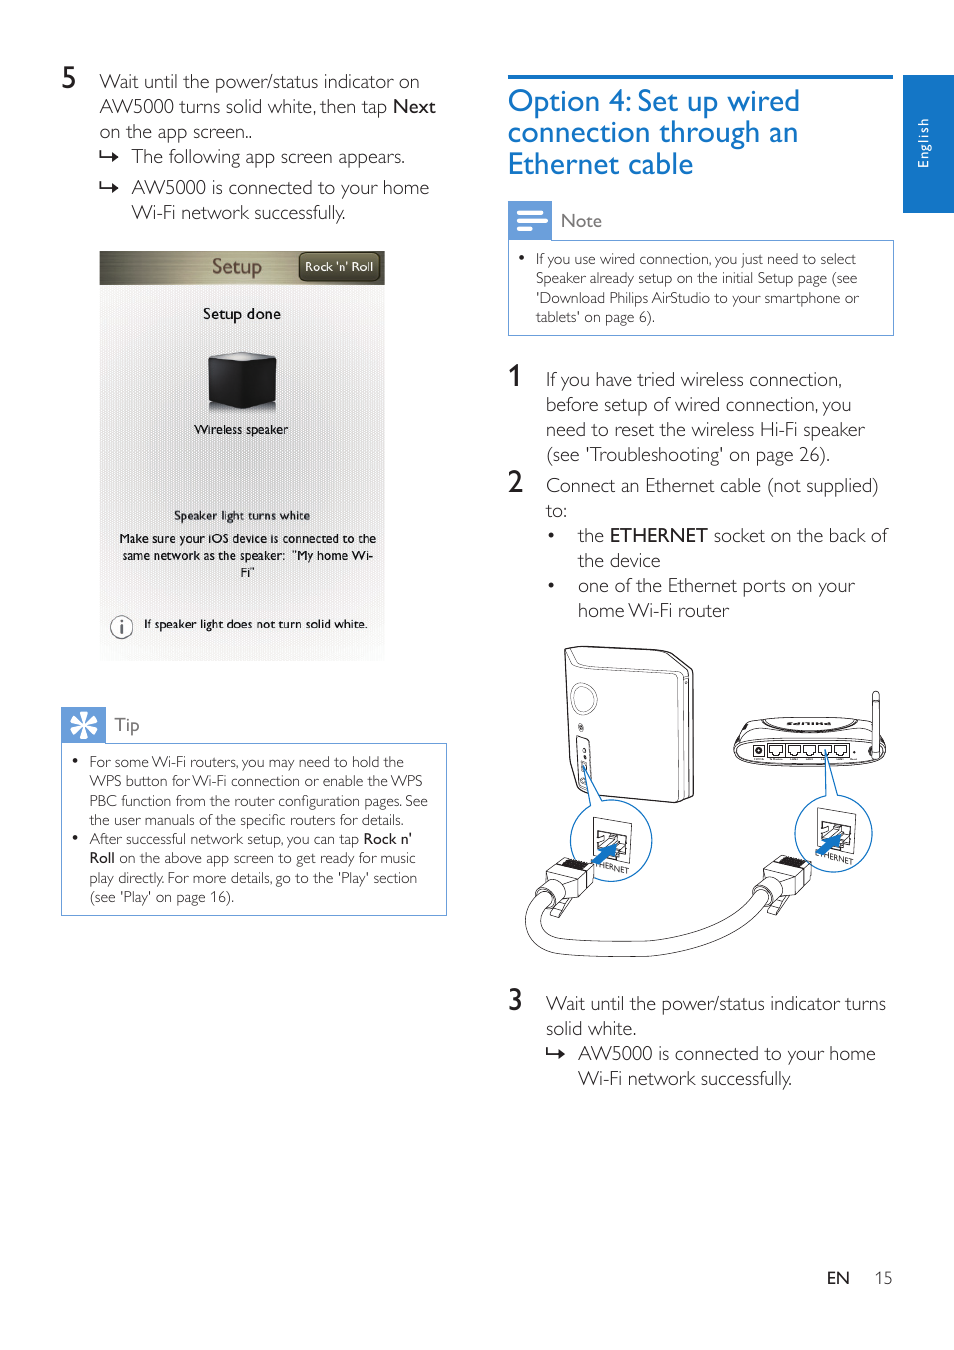 Option 4 Set Up Wired Connection Through An Ethernet Cable Wiring For Your Home Philips Aw5000 User Manual Page 17 32